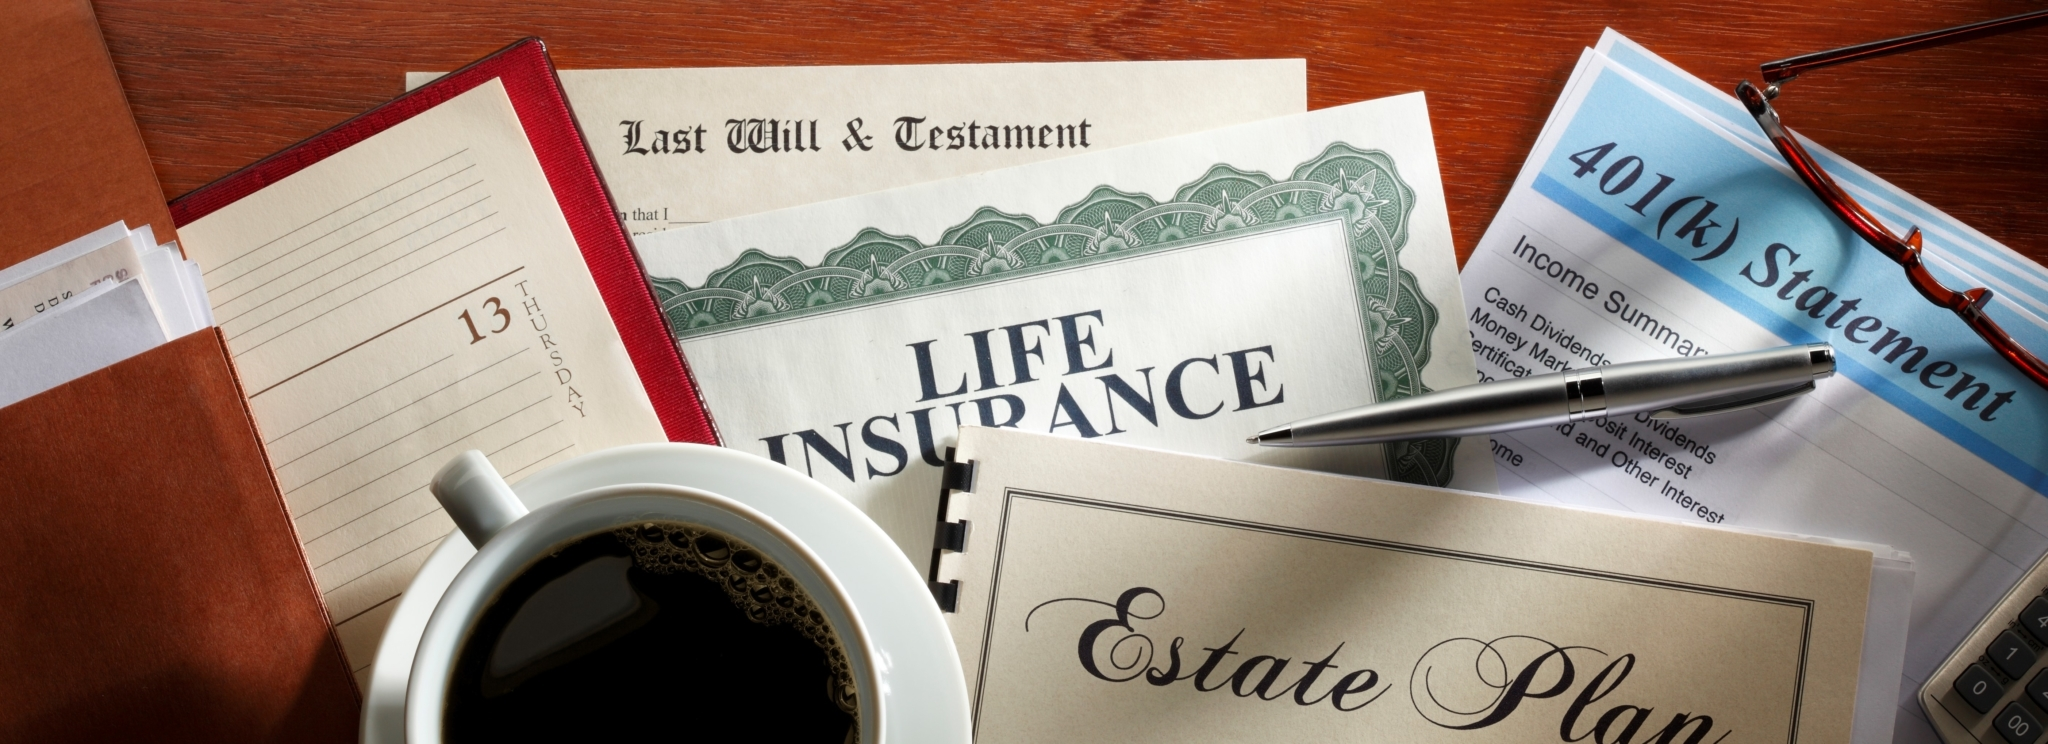 No Attorney Needed: Your Estate Plan in Two Simple Steps